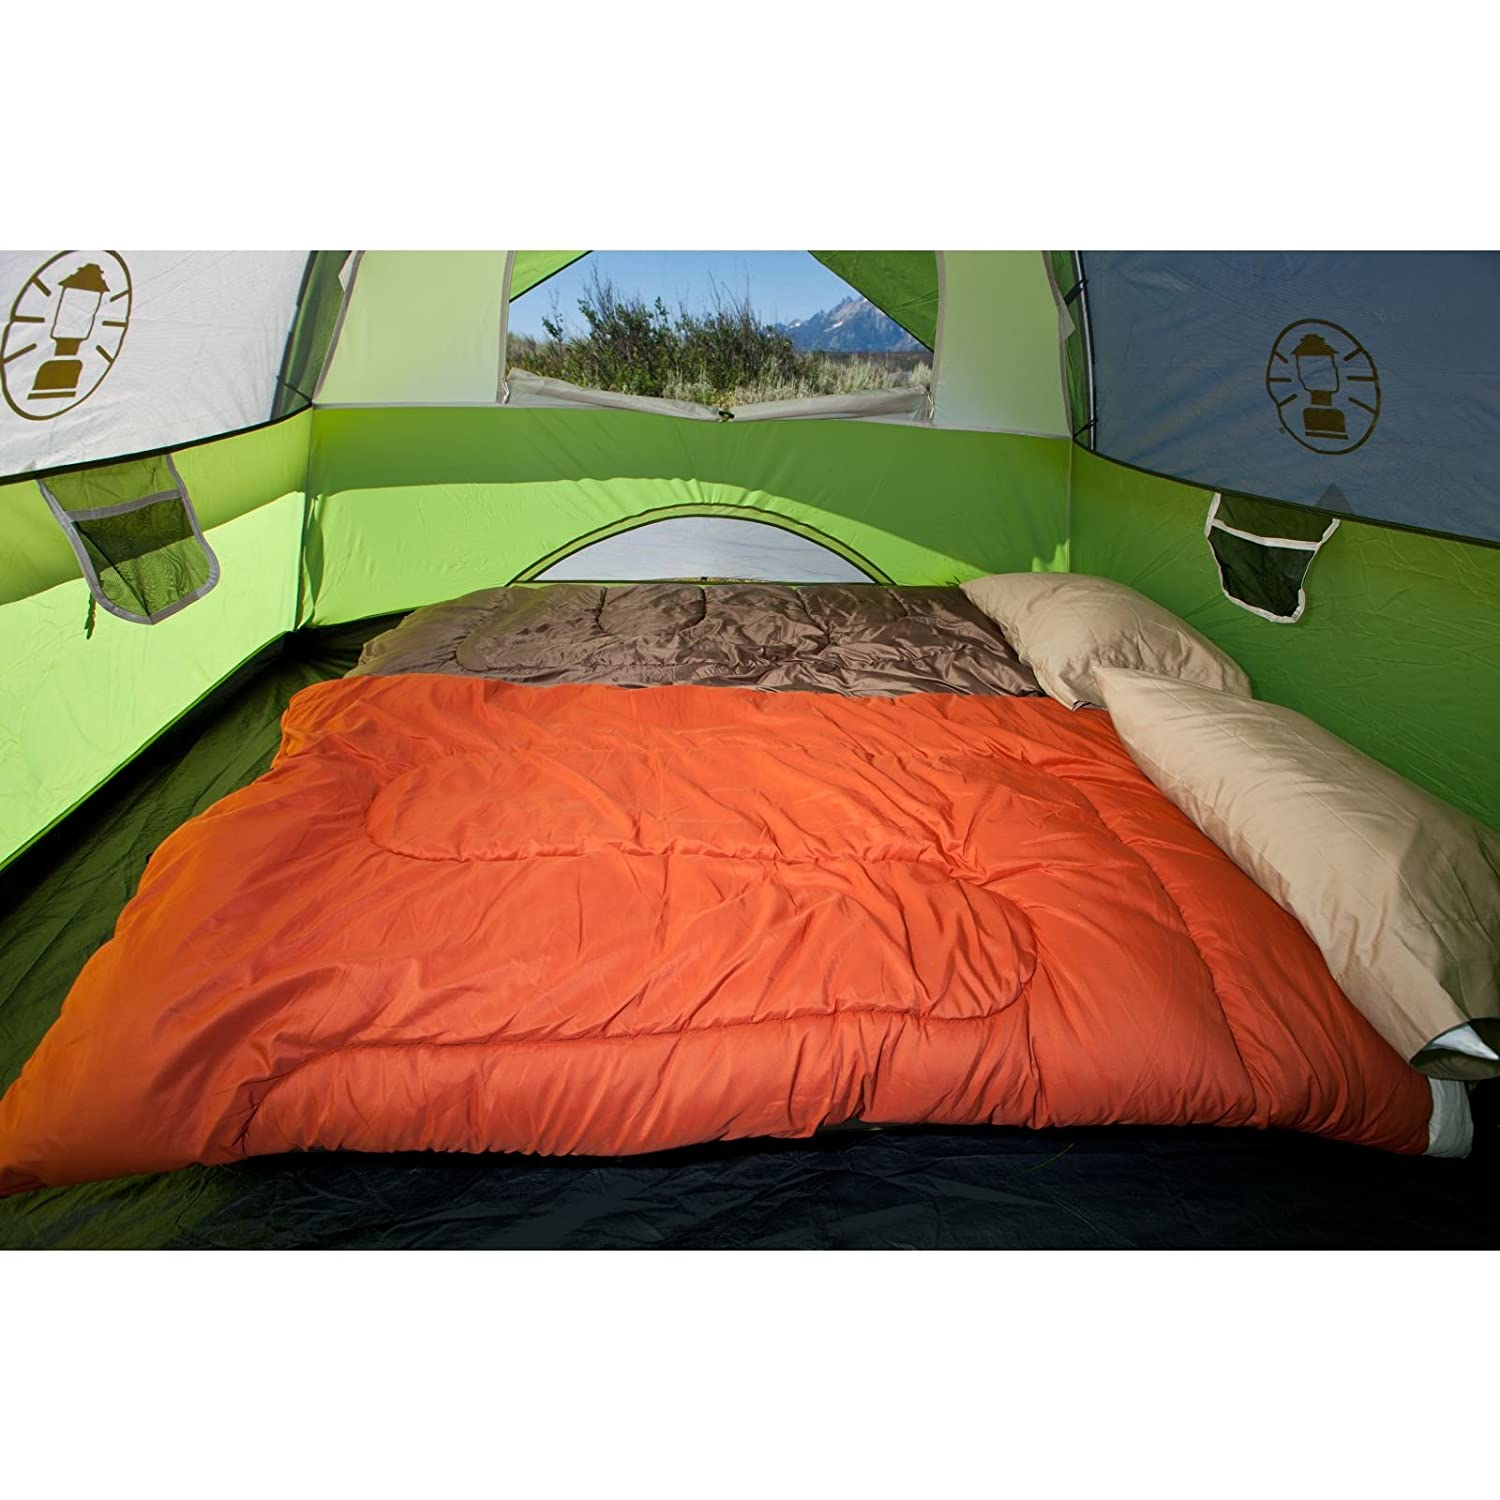 Coleman Sundome 4-person Tent Product Features  sc 1 st  Traveling Monarch : coleman sundome tent 5 person - memphite.com